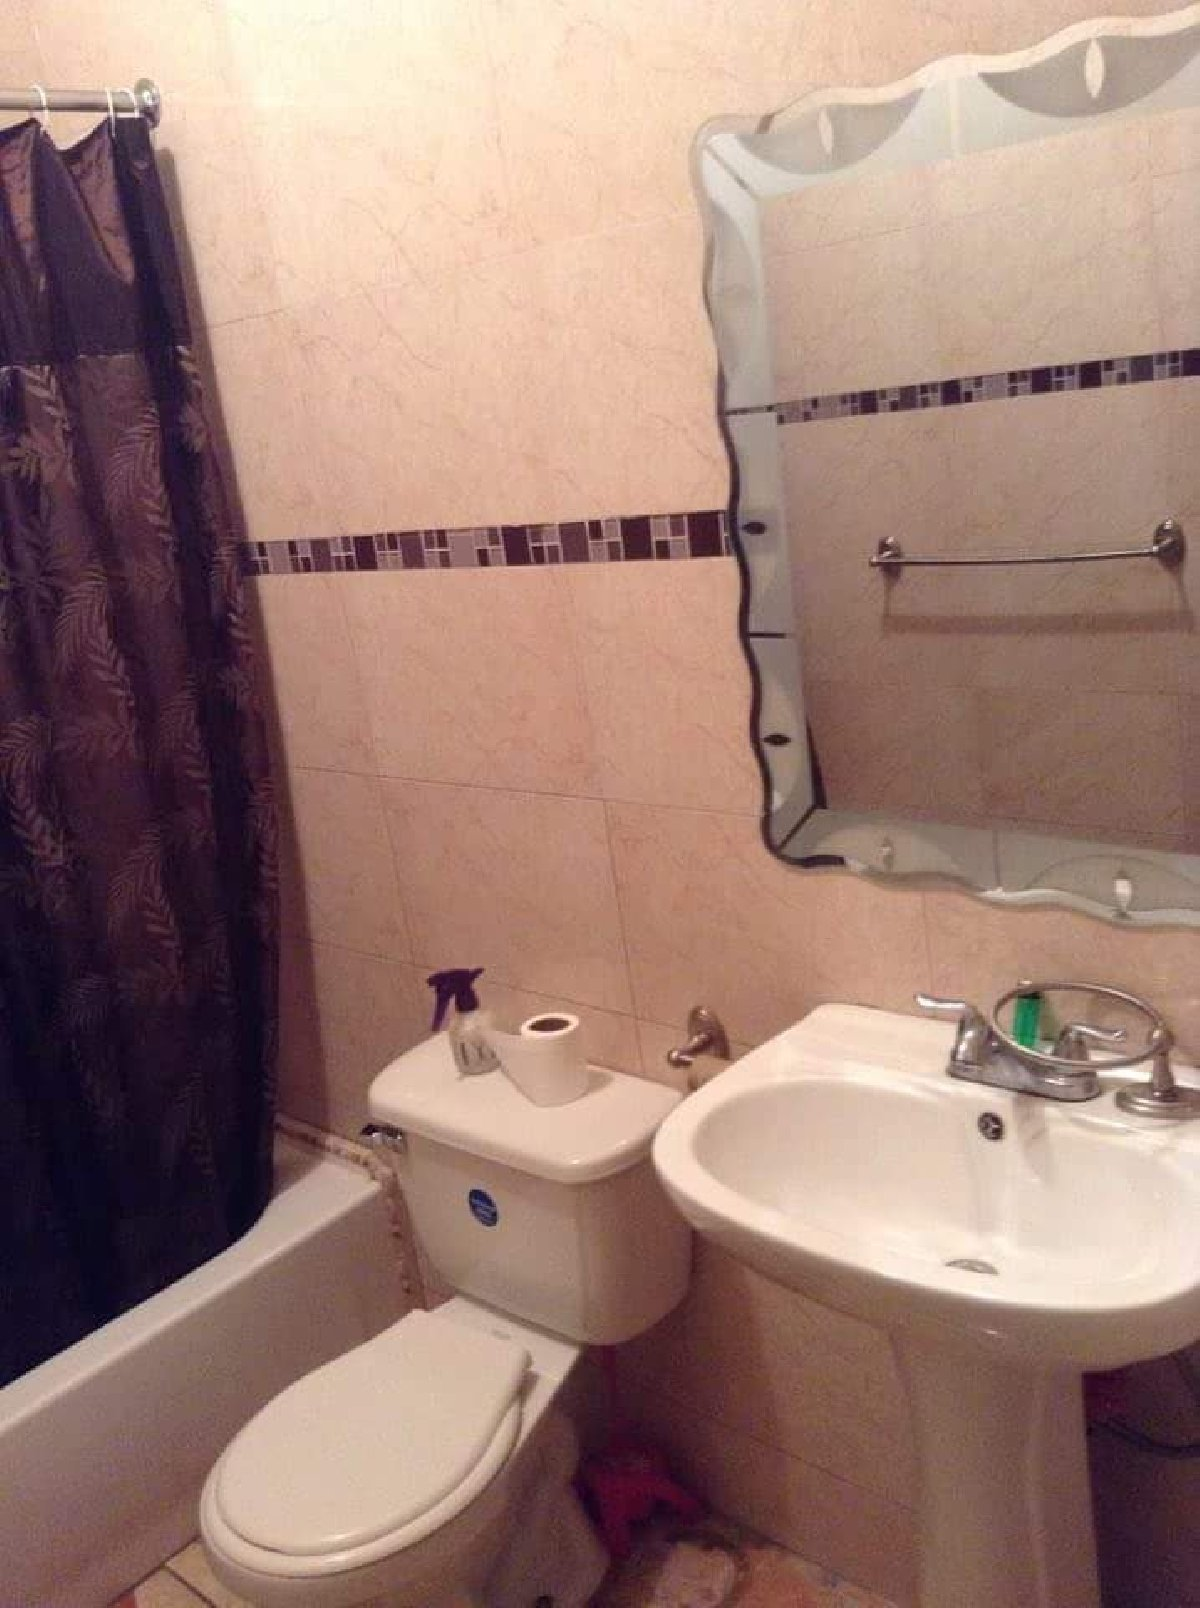 Best 1 Bedroom 1 Bathroom Semi Furnished For Rent In Golden With Pictures Original 1024 x 768